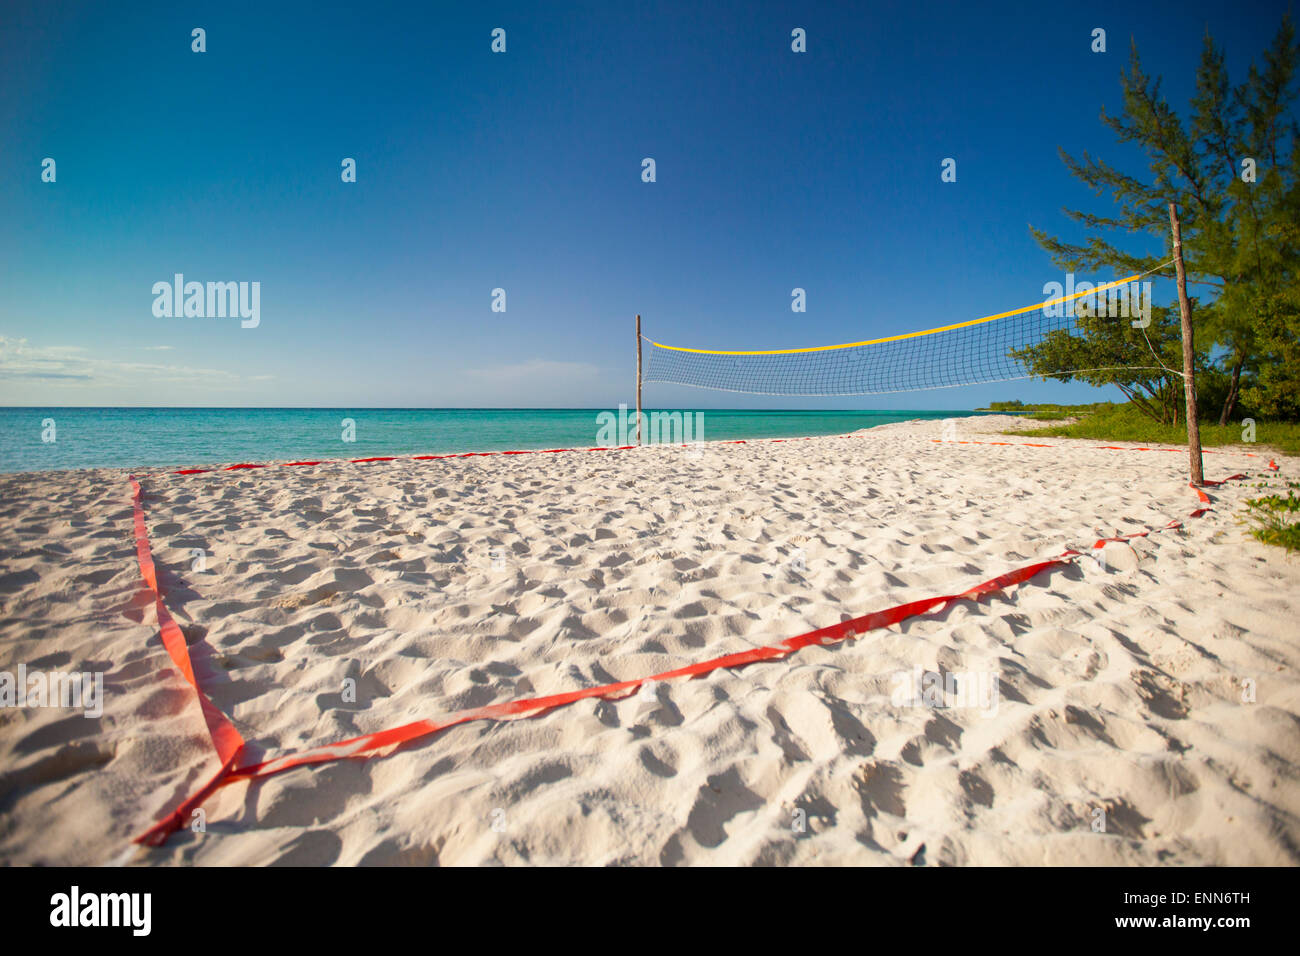 A Beach Volleyball Court Set Up Beside The Ocean On Playa La Jaula Stock Photo Alamy